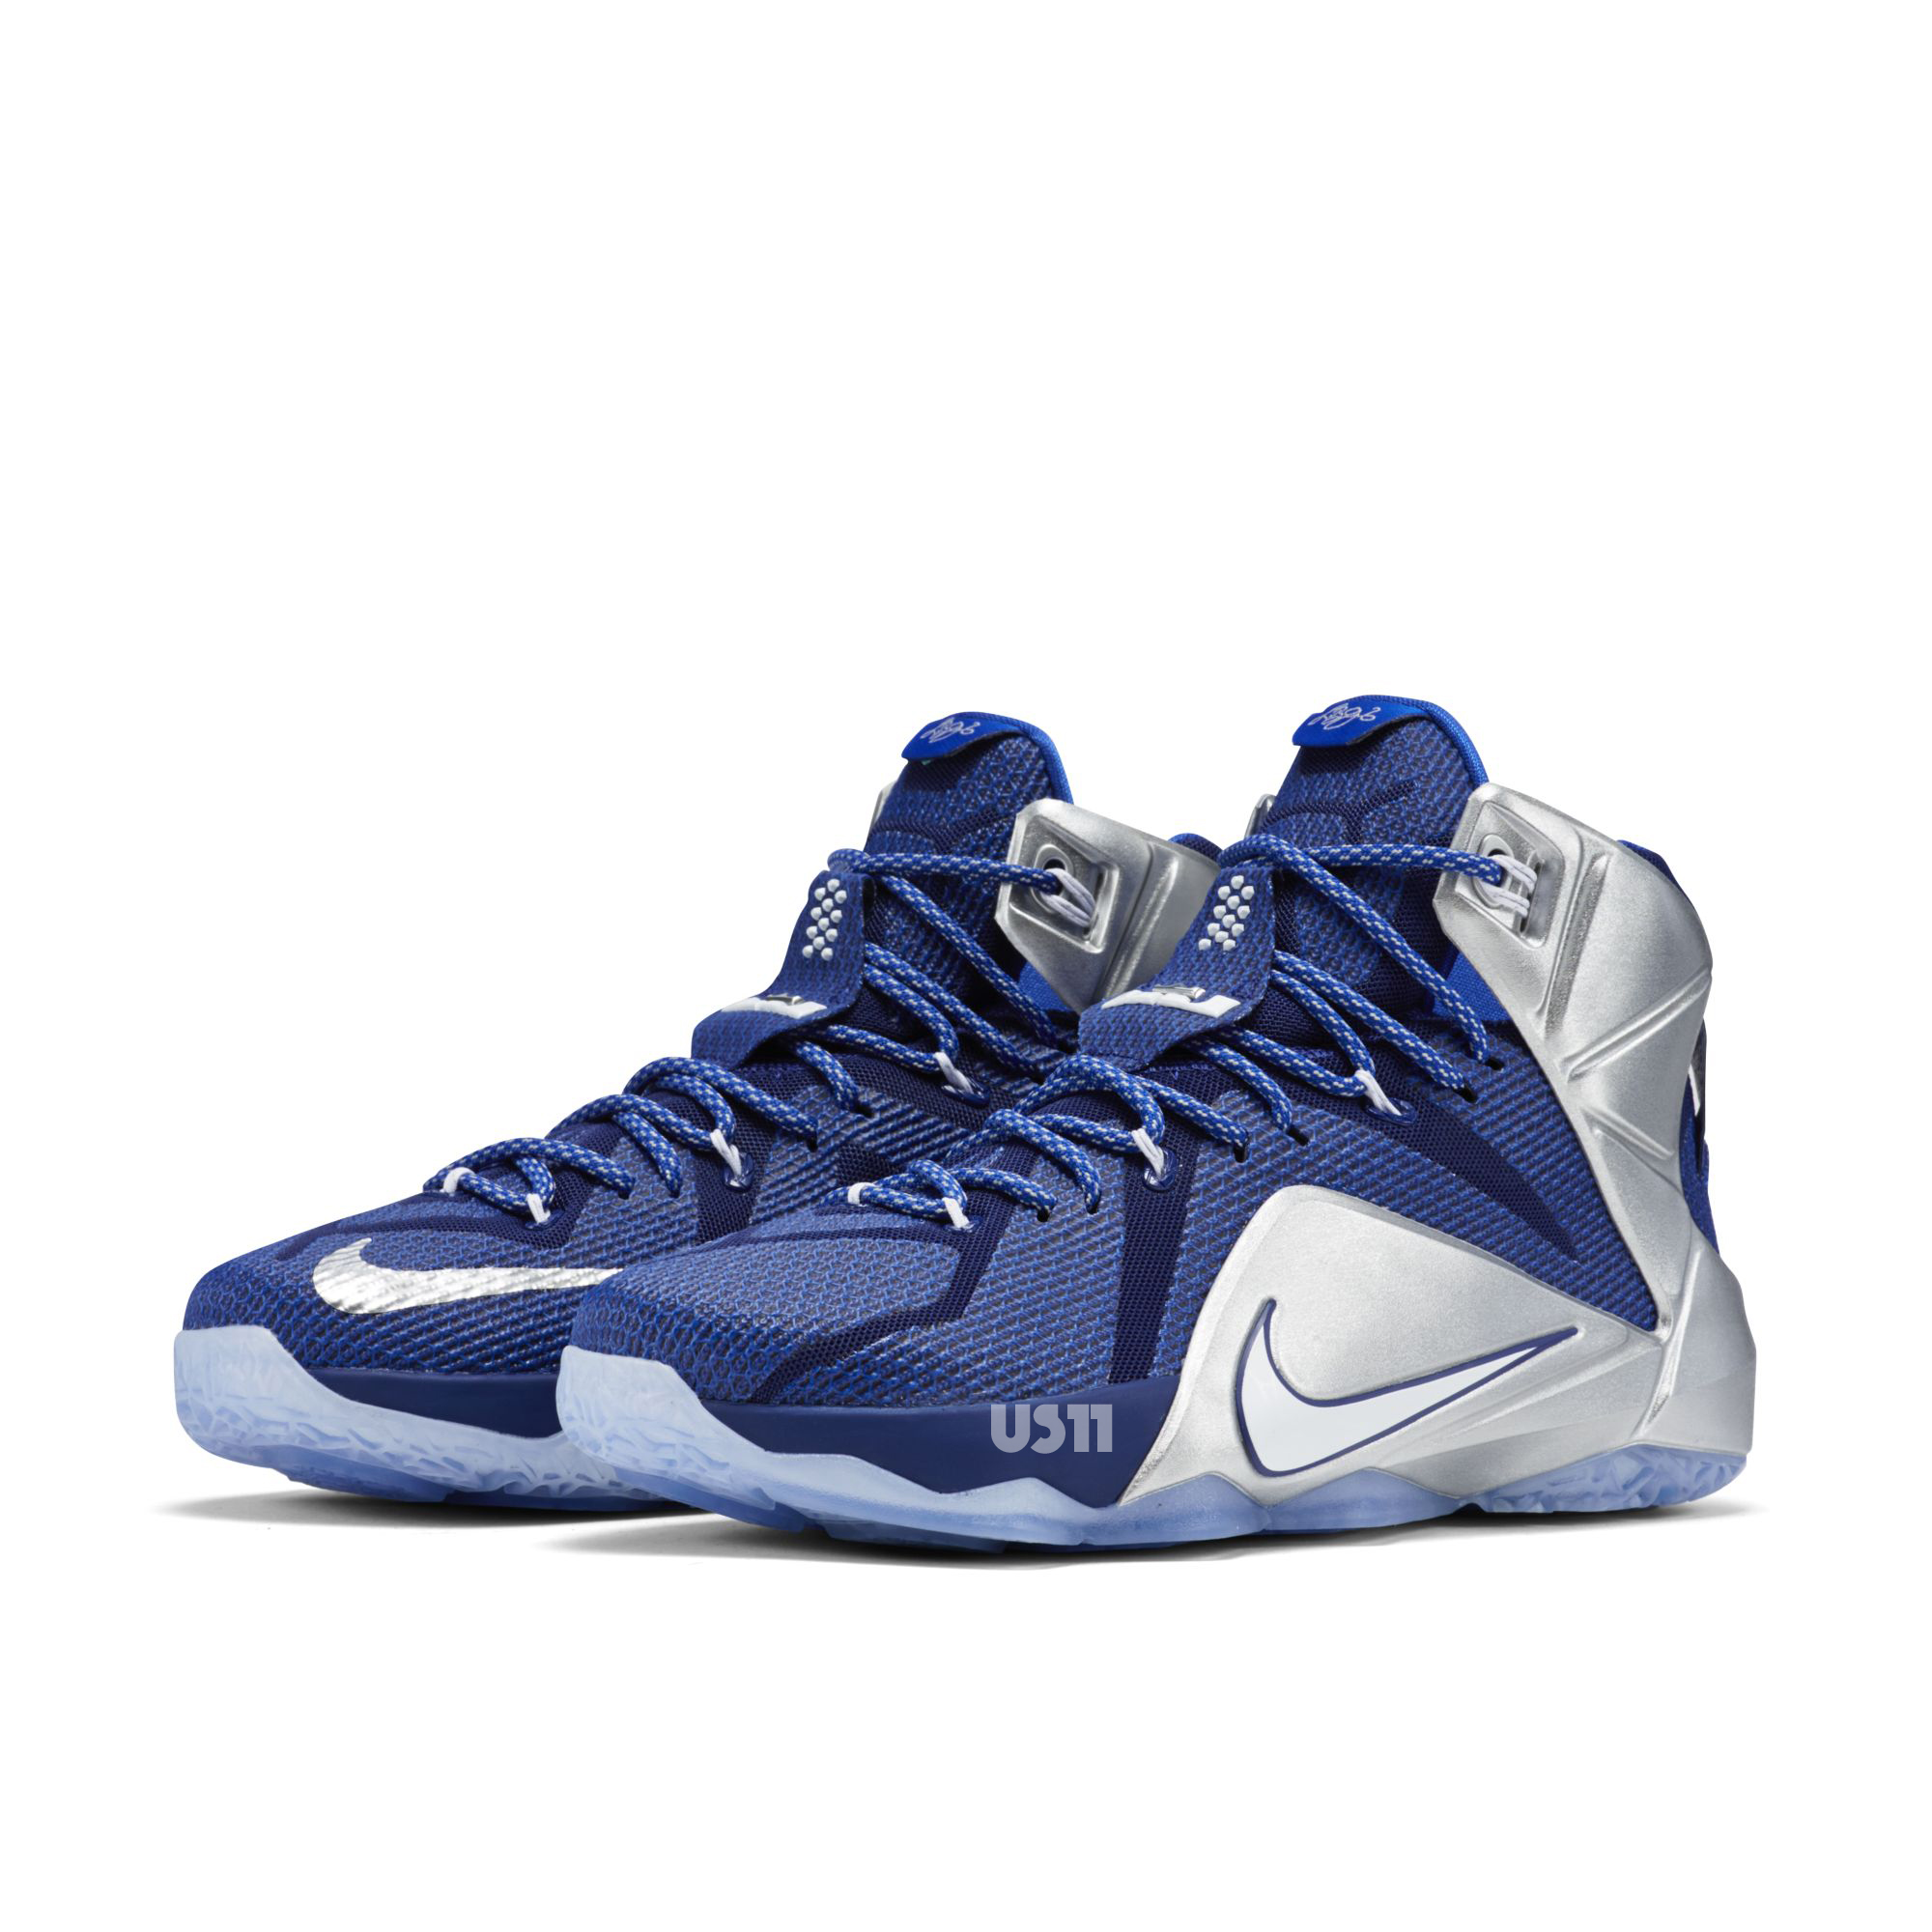 wholesale dealer 6f855 c6cb9 ... france nike lebron 12 deep royal blue images release date 621a4 e5d02